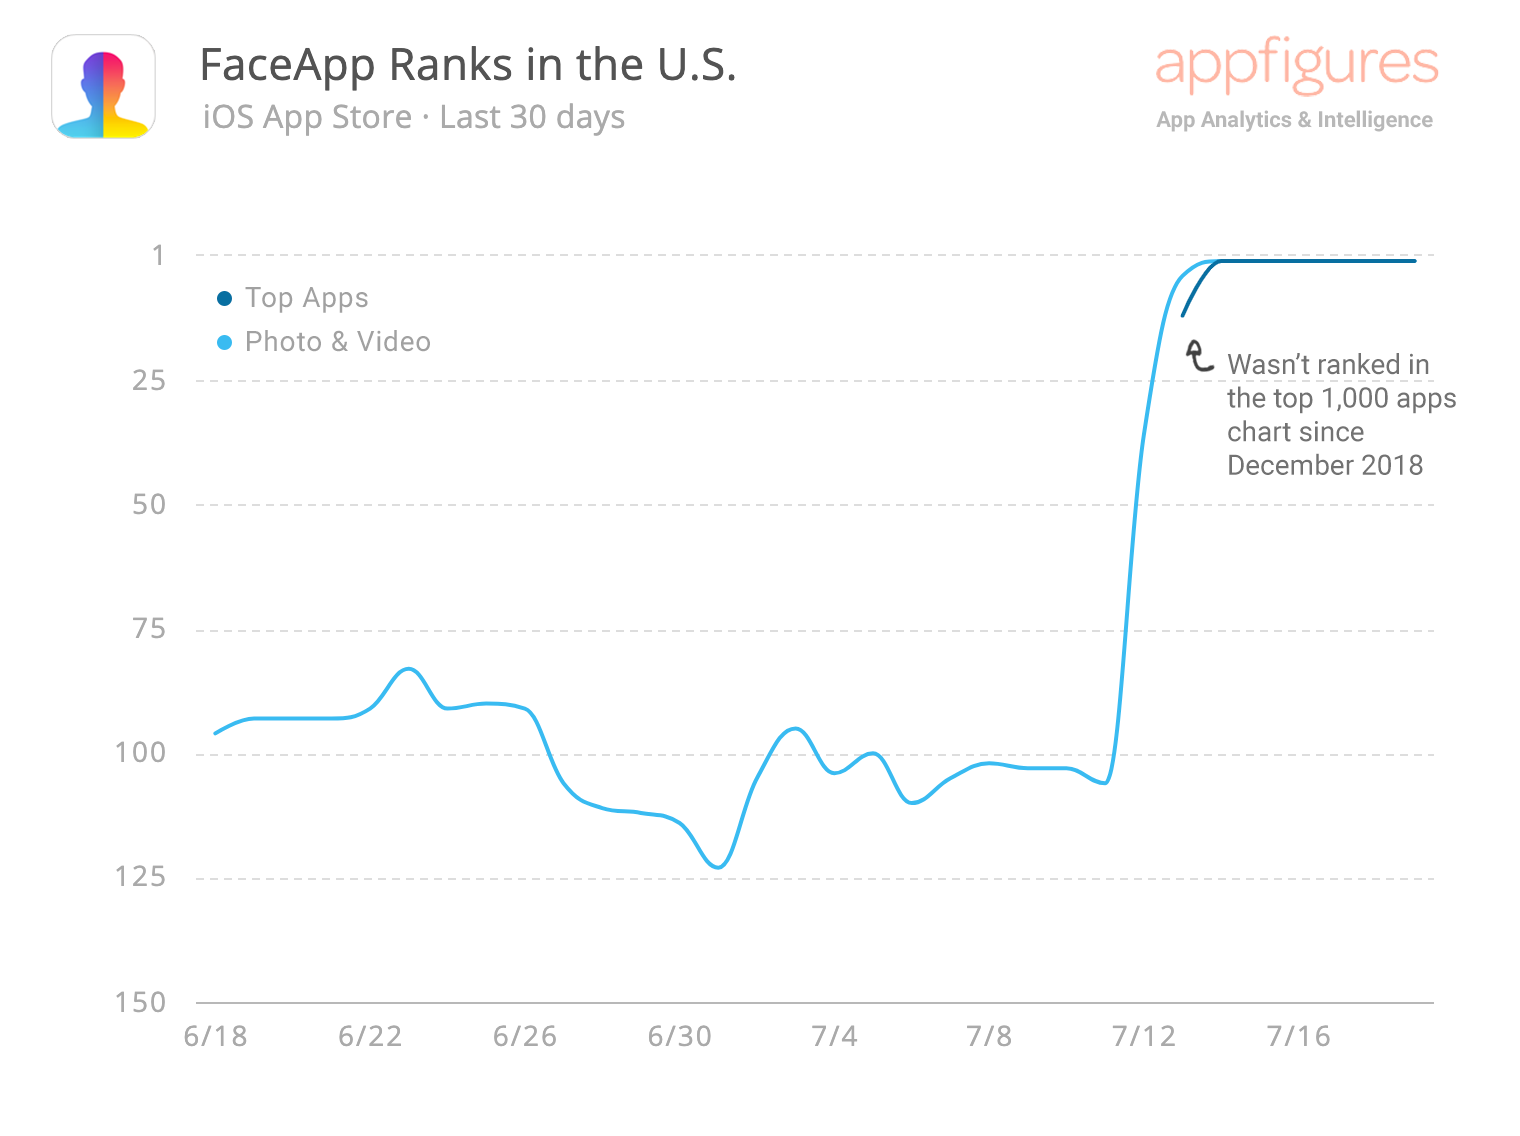 FaceApp App Store is rated by Appfigures